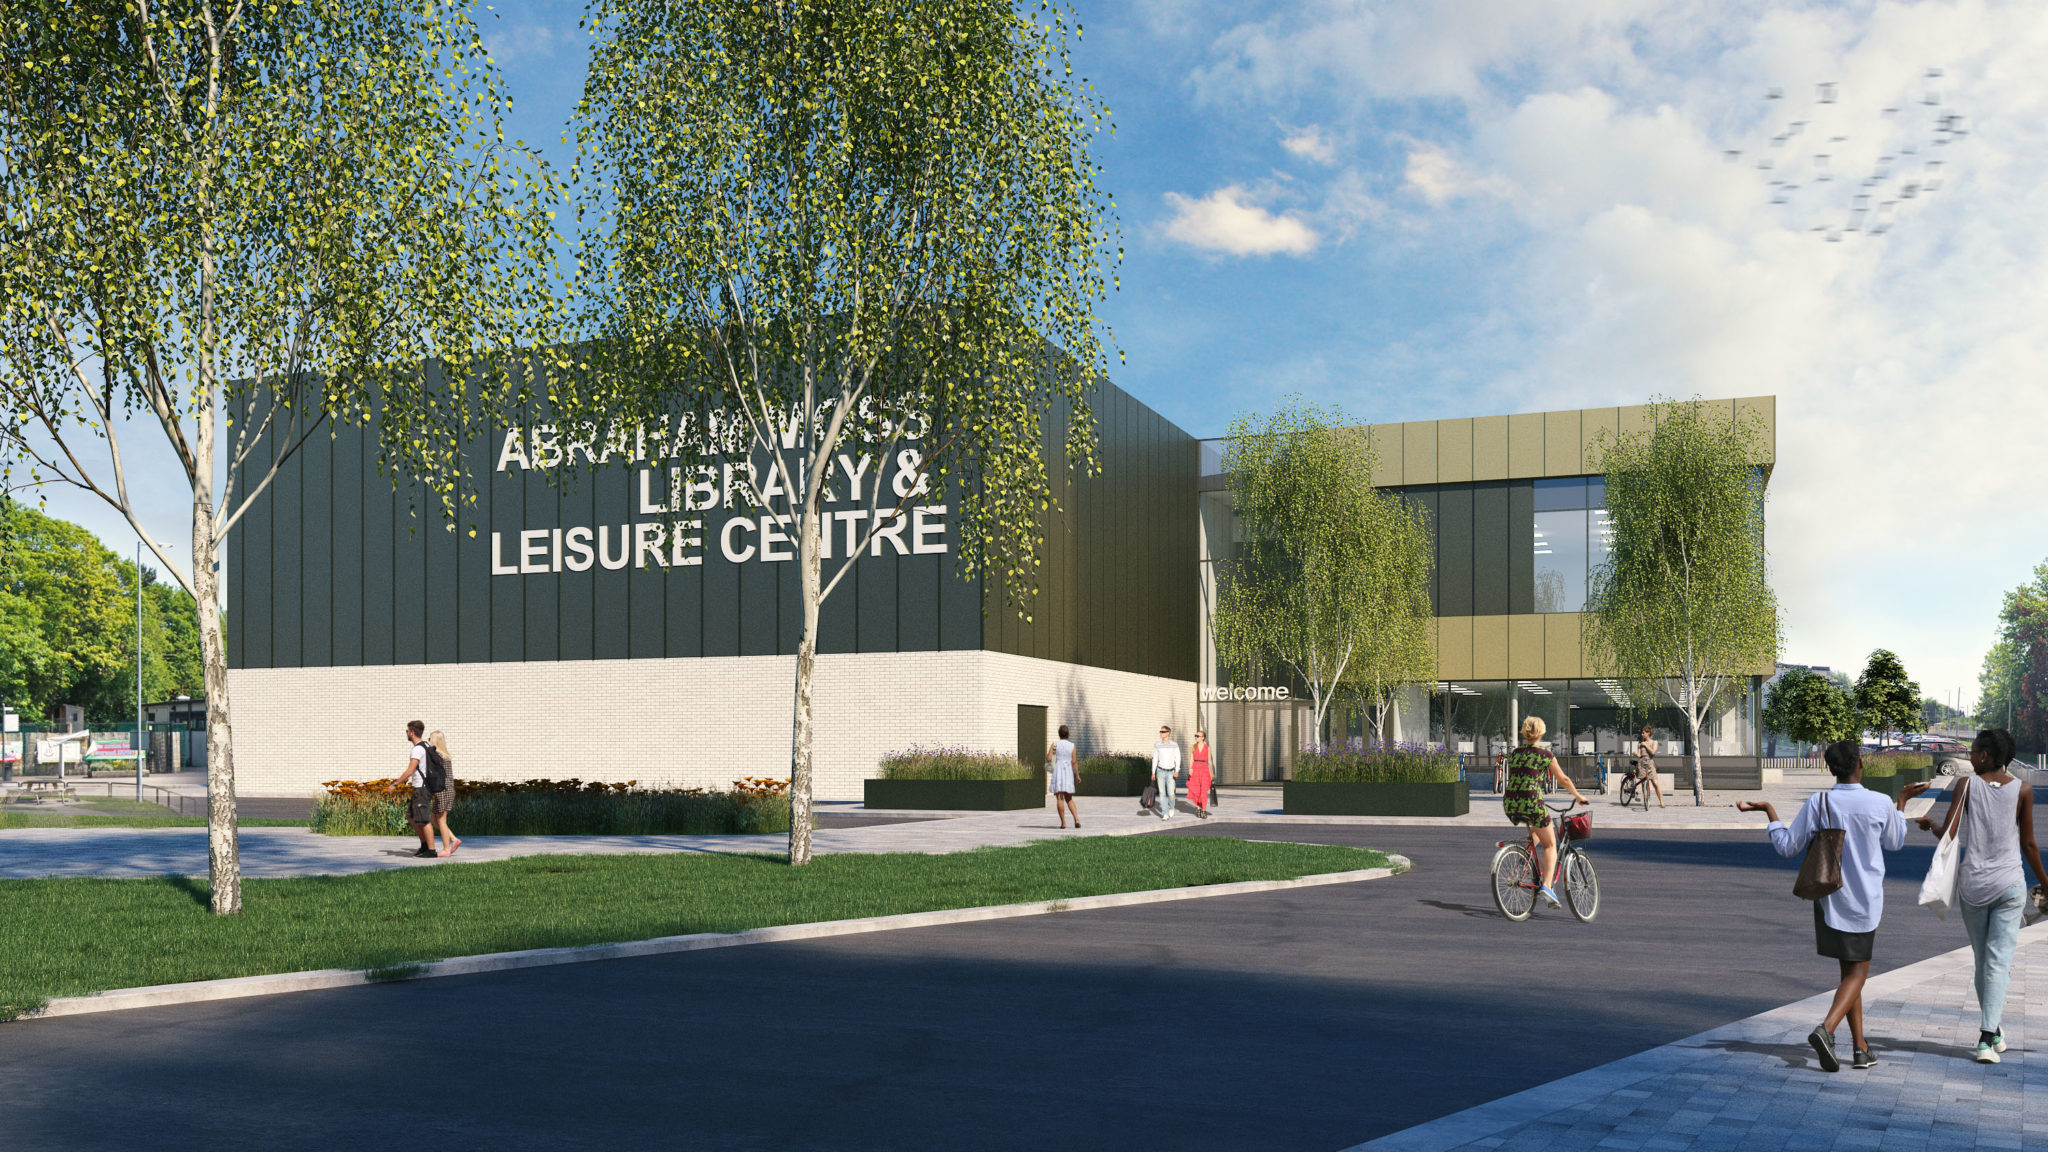 Abraham Moss Library & Leisure Centre